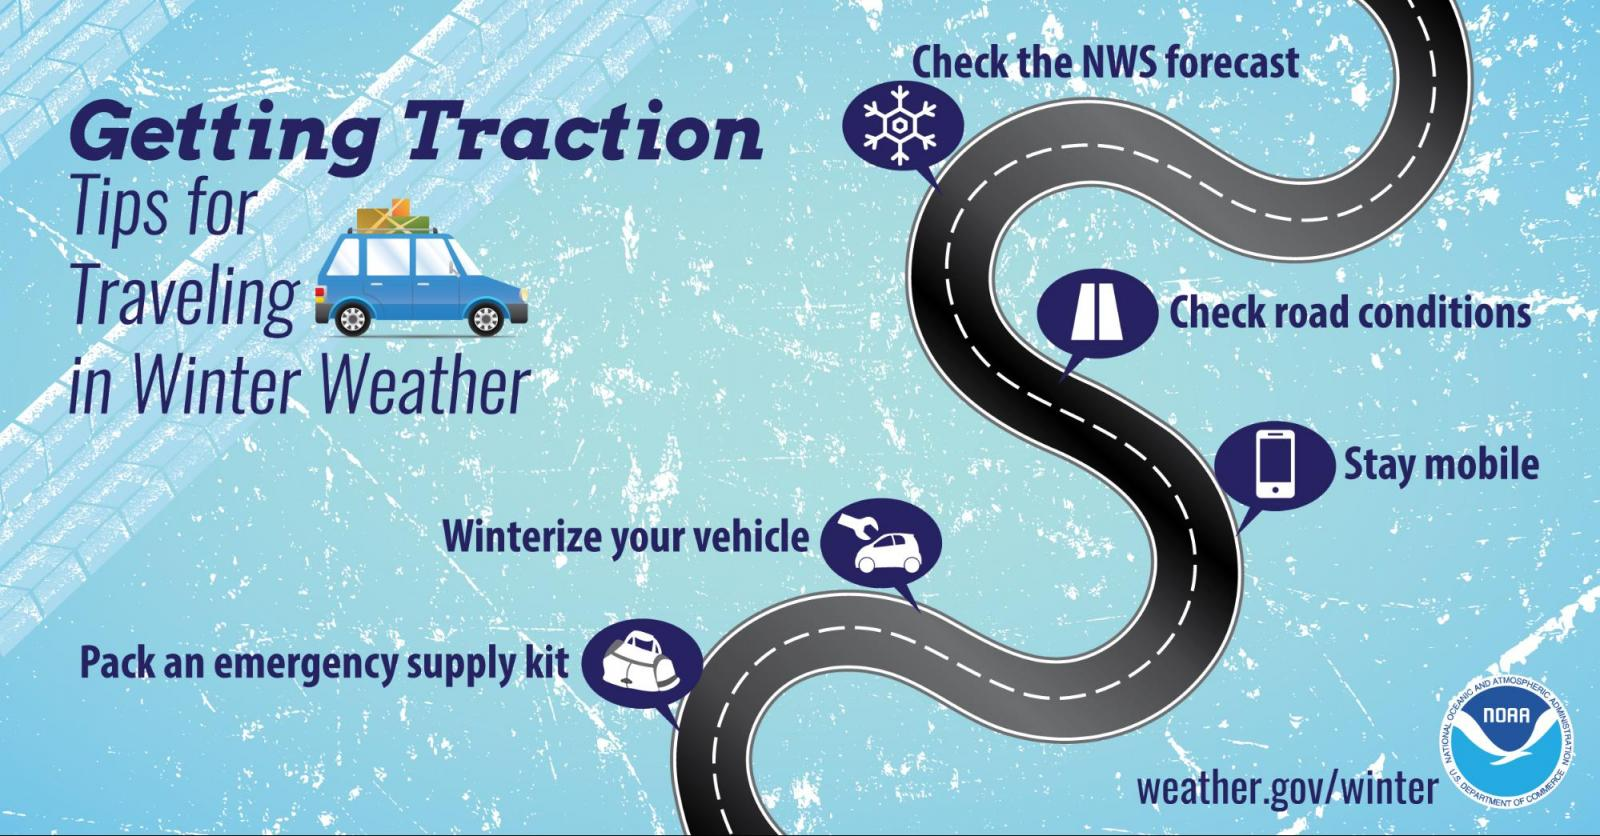 Getting Traction: Tips for Travelling in Winter Weather